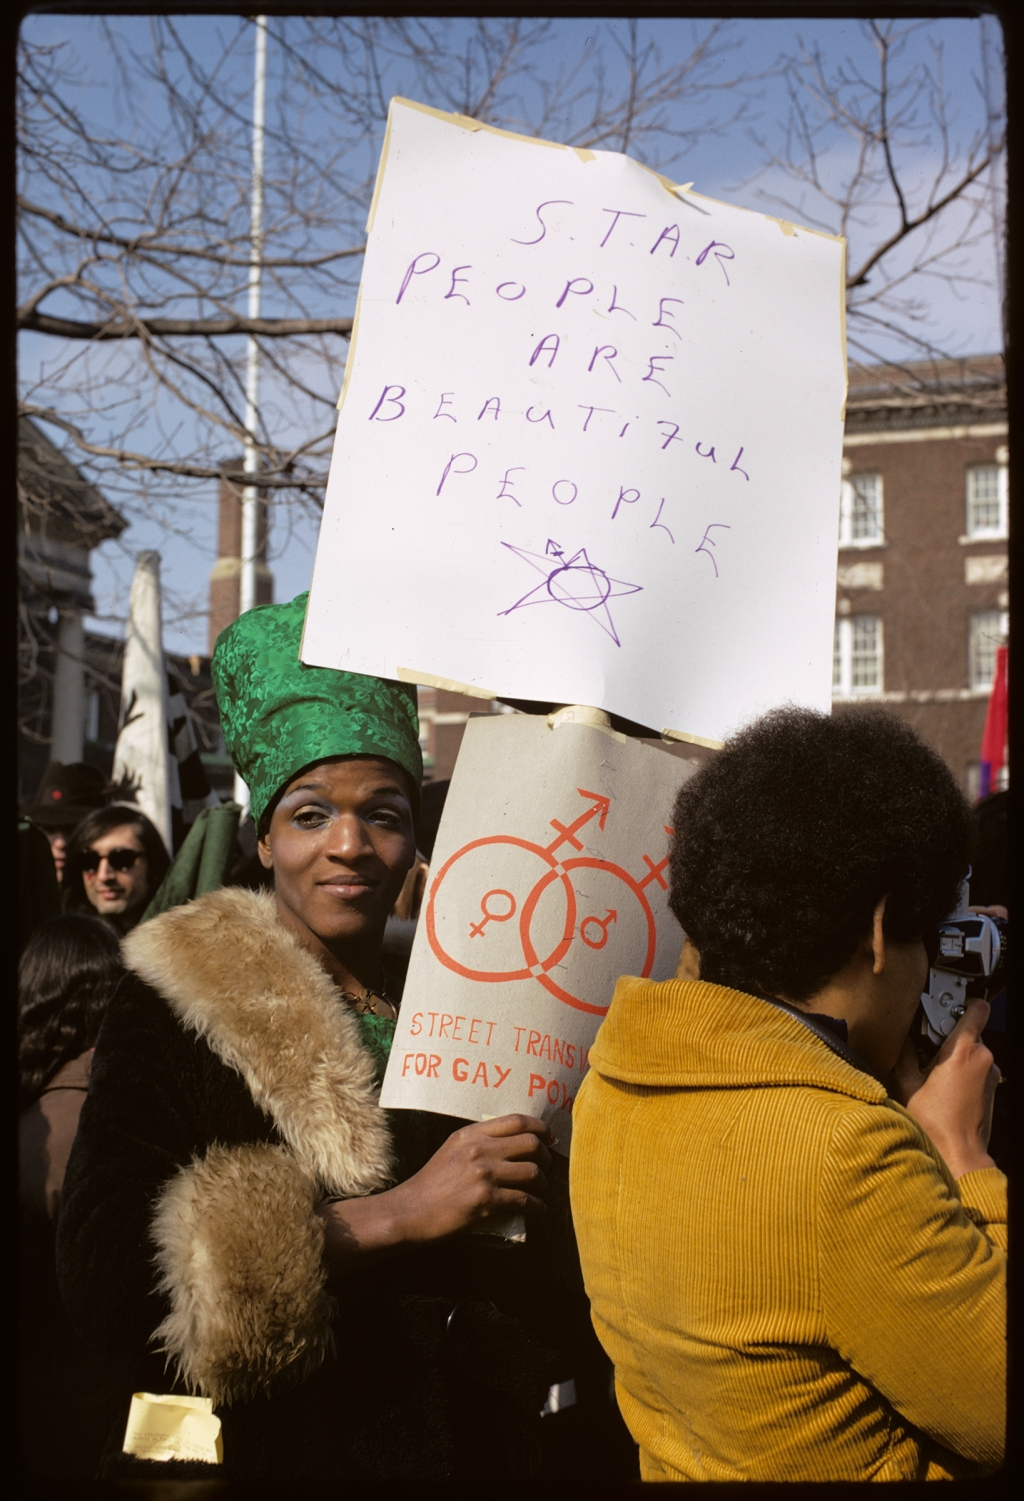 """""""I didn't get downtown until about two o'clock,"""" said Marsha P. Johnson, one of the most renowned activists of the Stonewall Riots, in an interview with journlist Eric Marcus. """"When I got downtown, the place was already on fire."""" But clashing with the police was commonplace for her by 1969. """"I'd been going to jail for like, 10 years before the Stonewall."""" At the time, you had to have at least three articles of clothing that matched your legal gender, or you could be arrested for masquerading (Miss Major, a leader in the trans-rights community who was also at the riots, would wear a men's watch, briefs and a t-shirt rolled up under her skirt.) Dressing in gender non-conforming clothing was one of the easiest ways to be targeted by the police, which is why drag queens and butch lesbians were the primary for arrest by the police during the Stonewall riots."""